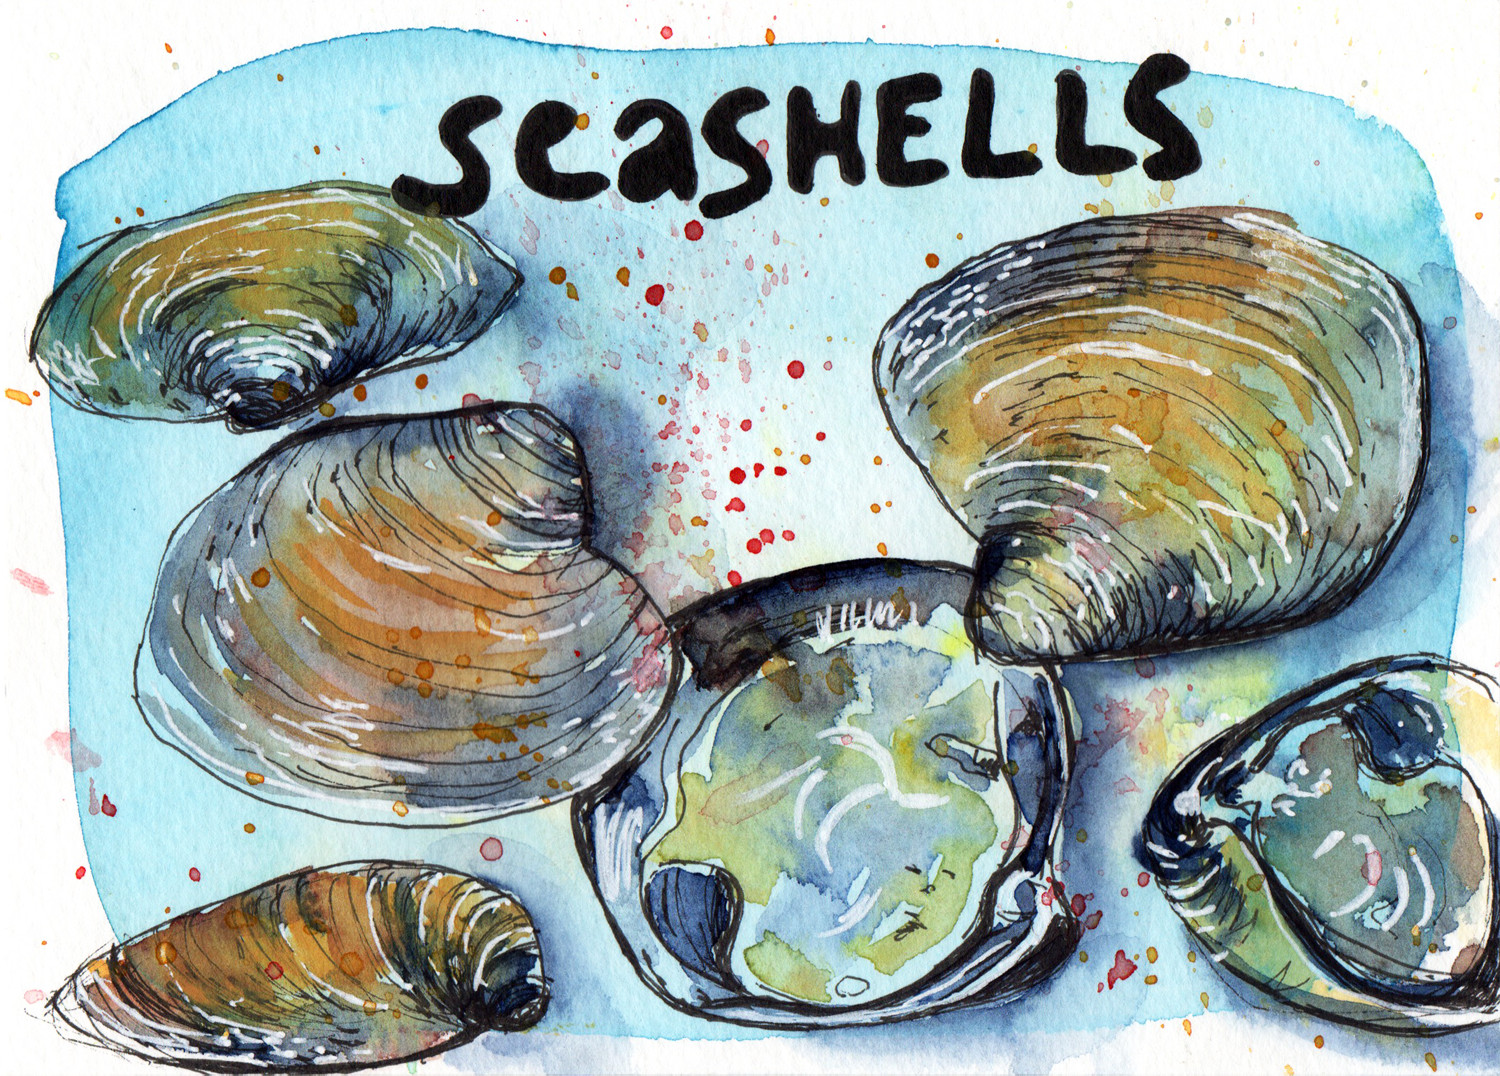 Daily Drawings Seashells in Pen and Watercolour by Sophie Peanut